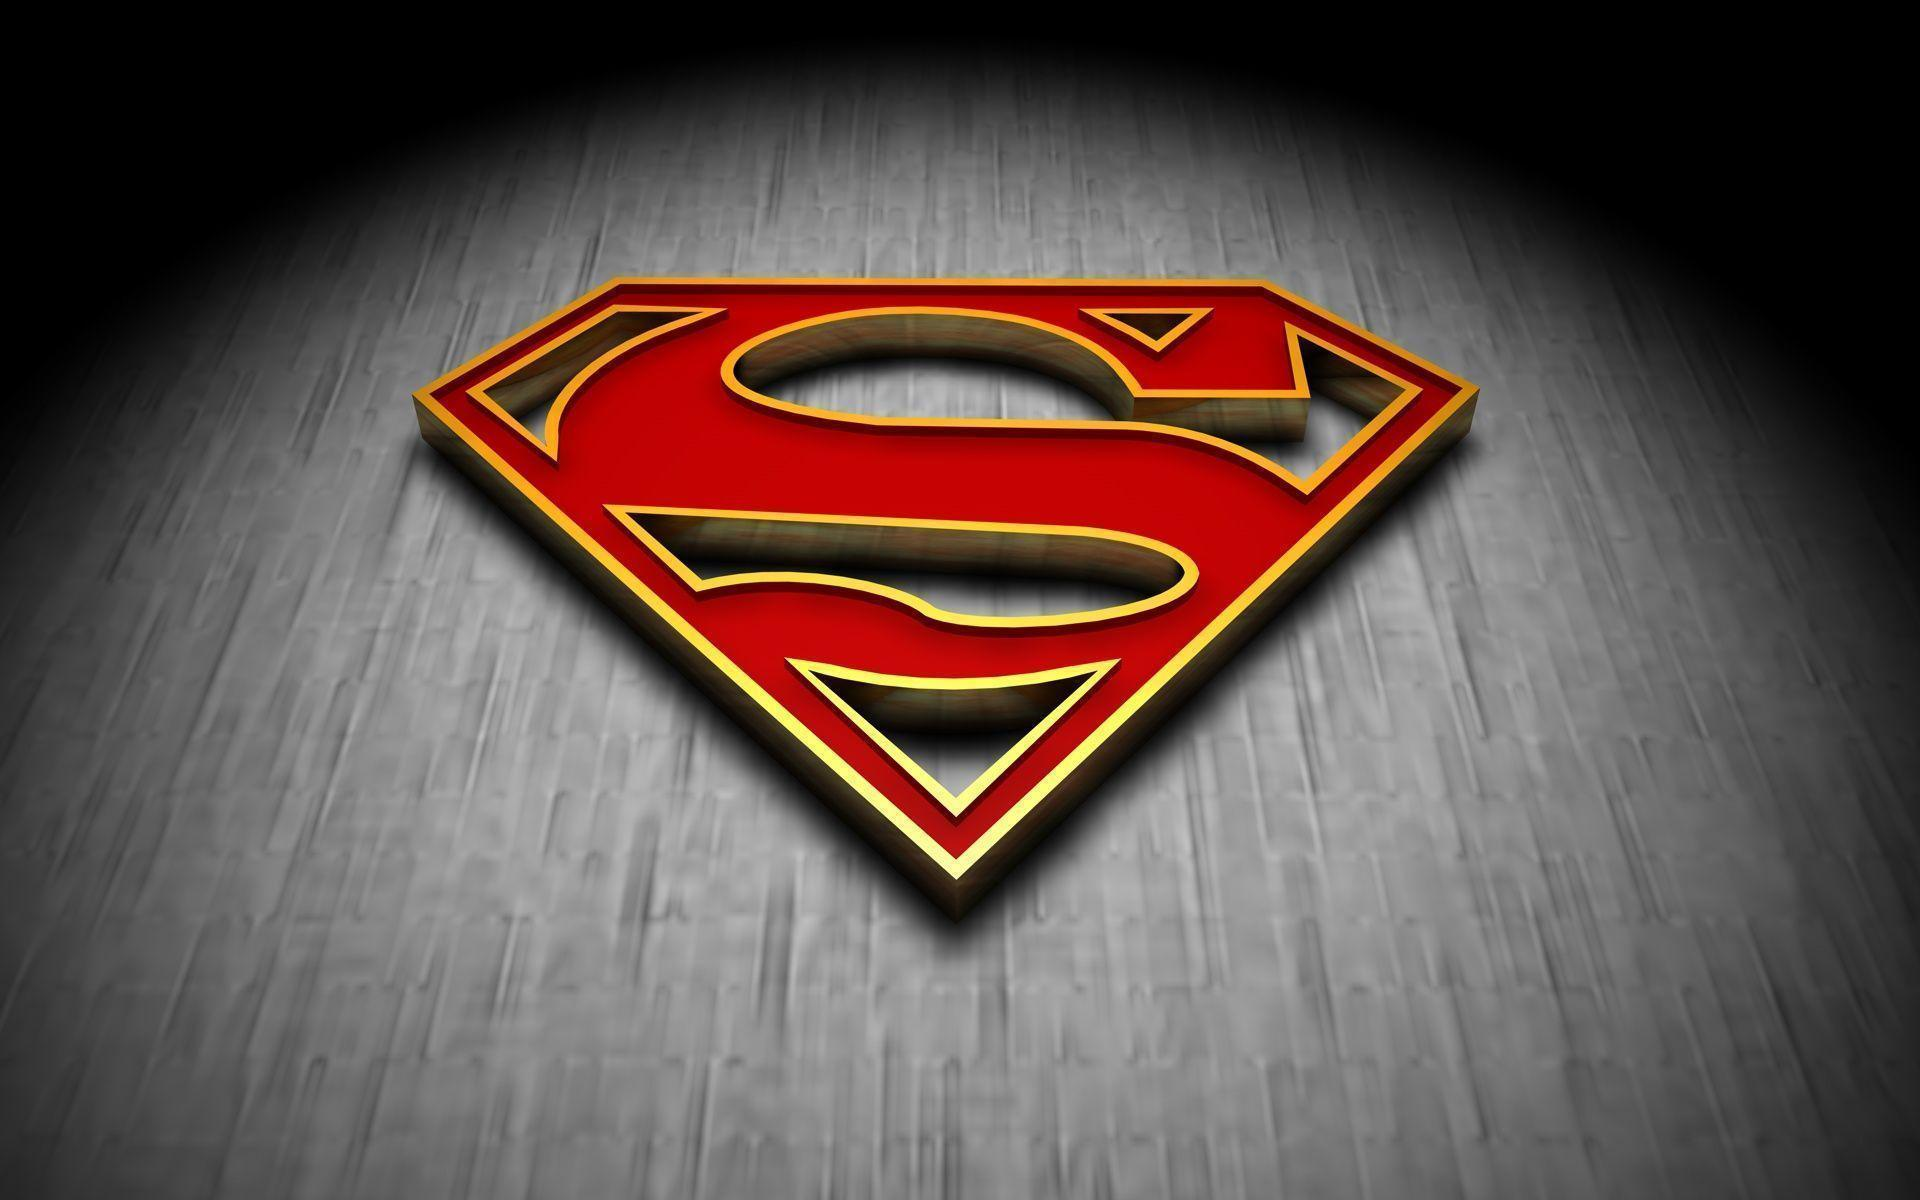 superman logo wallpaper 1080p 9833 - | Images And Wallpapers - all ...